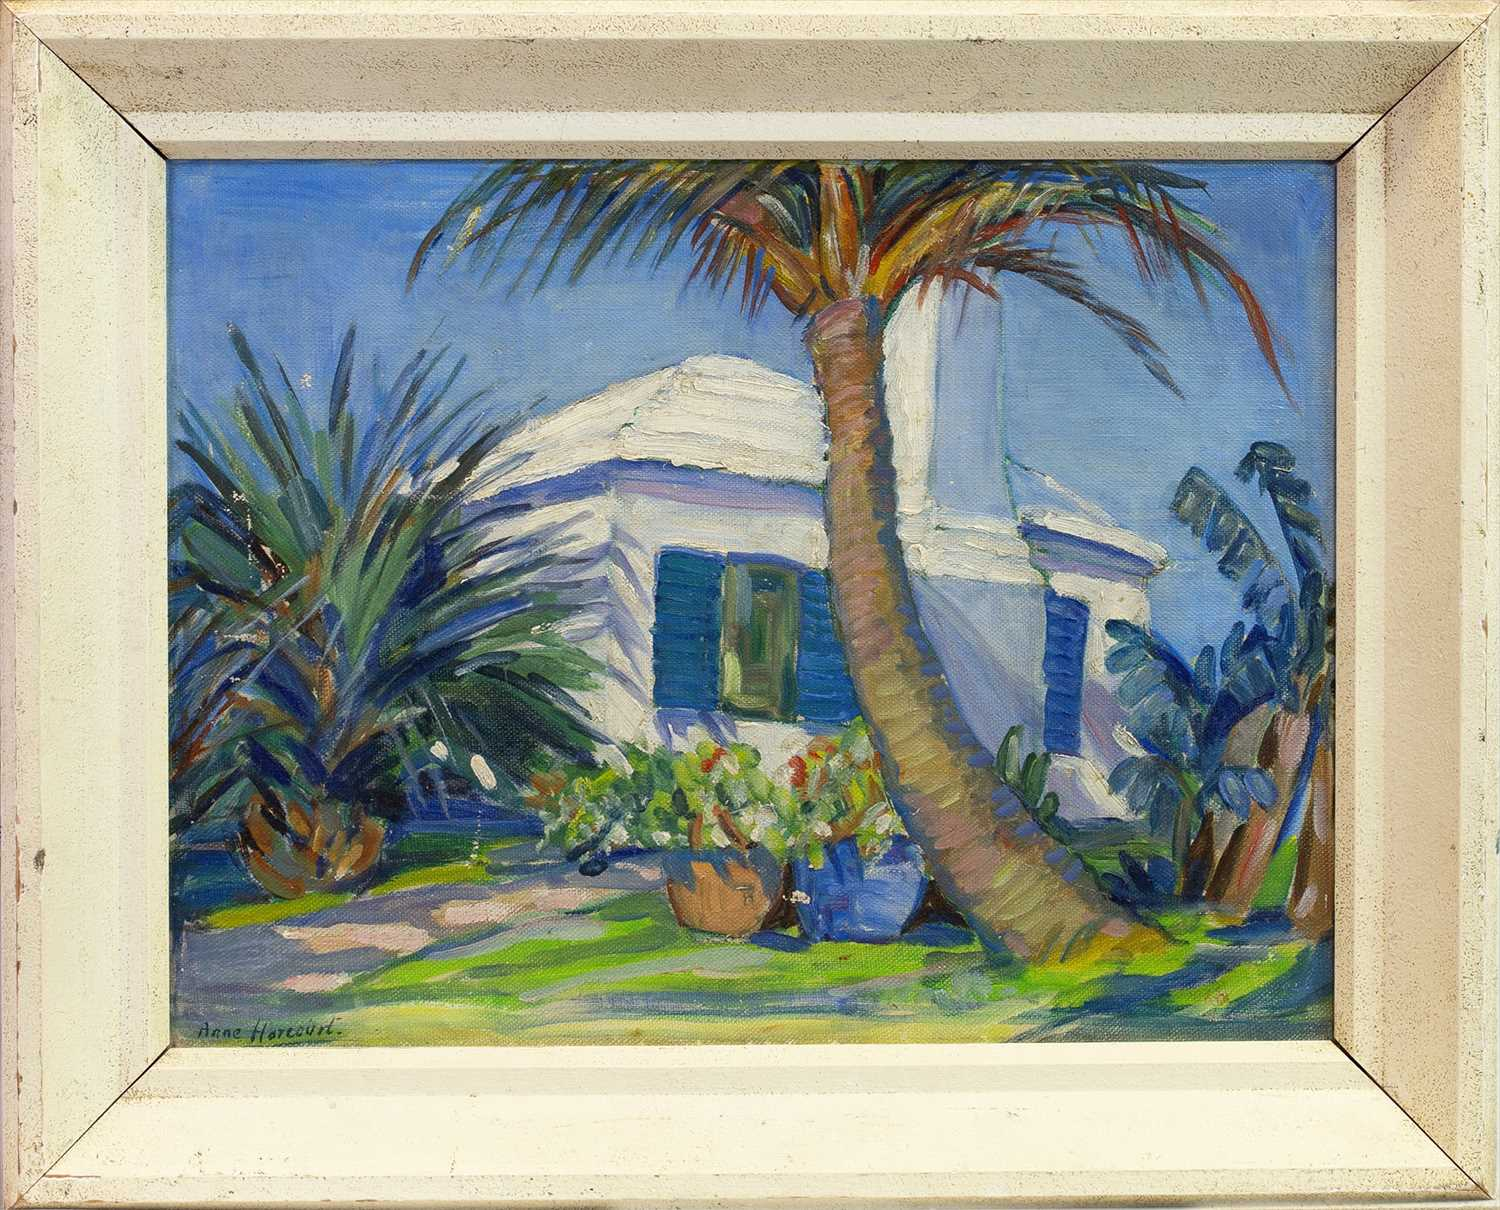 Lot 411-THE VILLA, AN OIL BY ANNE HARCOURT